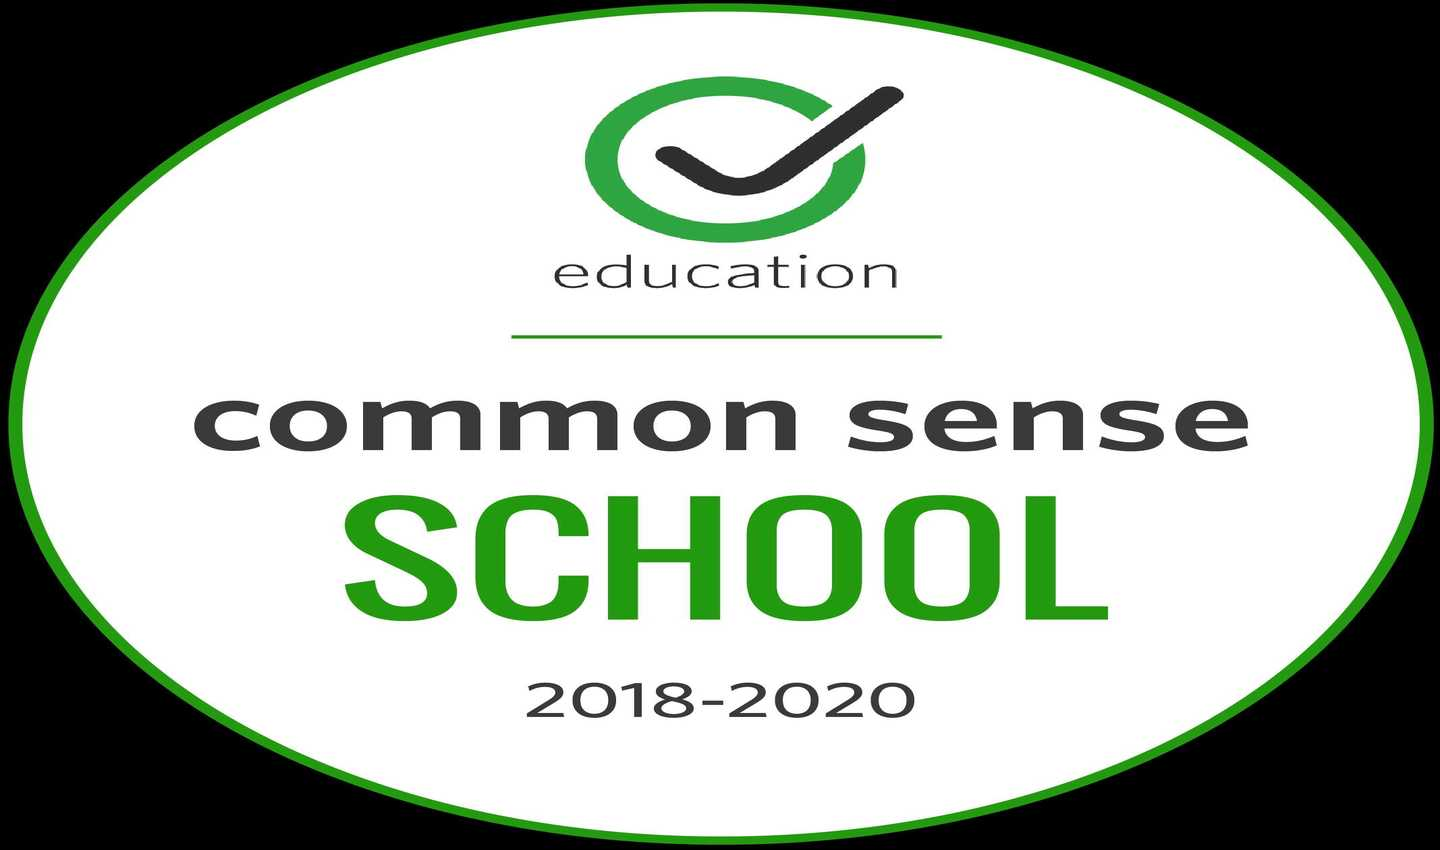 Common Sense School 2018-2020 Logo